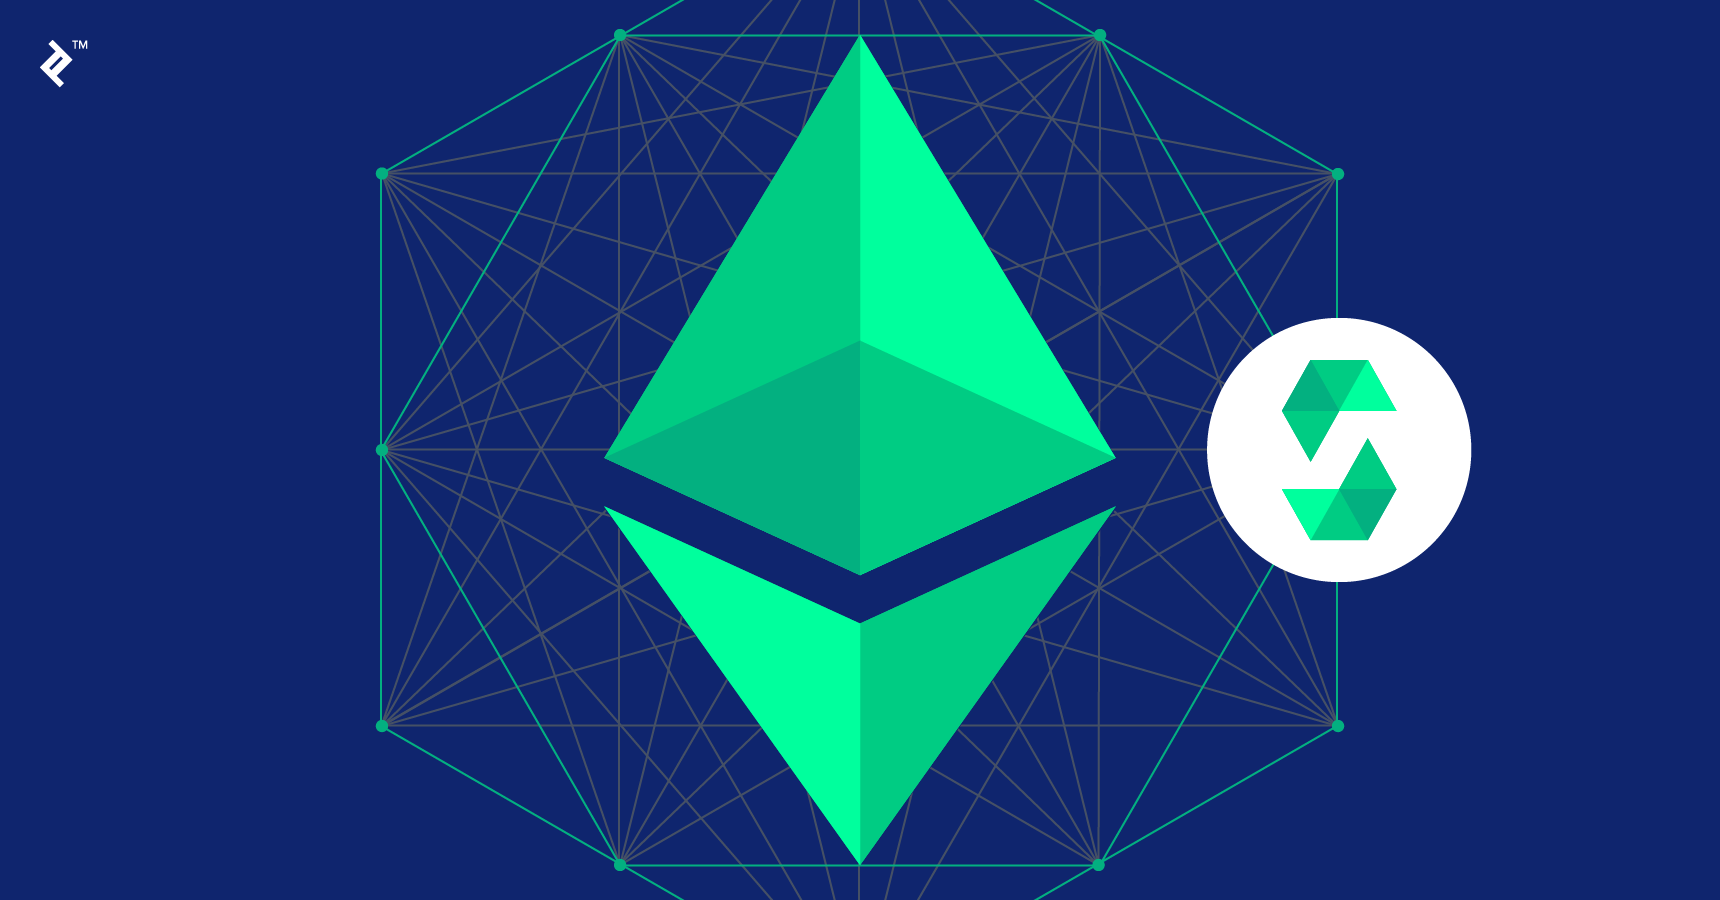 Ethereum specializes in smart contracts, which are the basis for ĐApps. Smart contracts are most commonly written in the Solidity language.